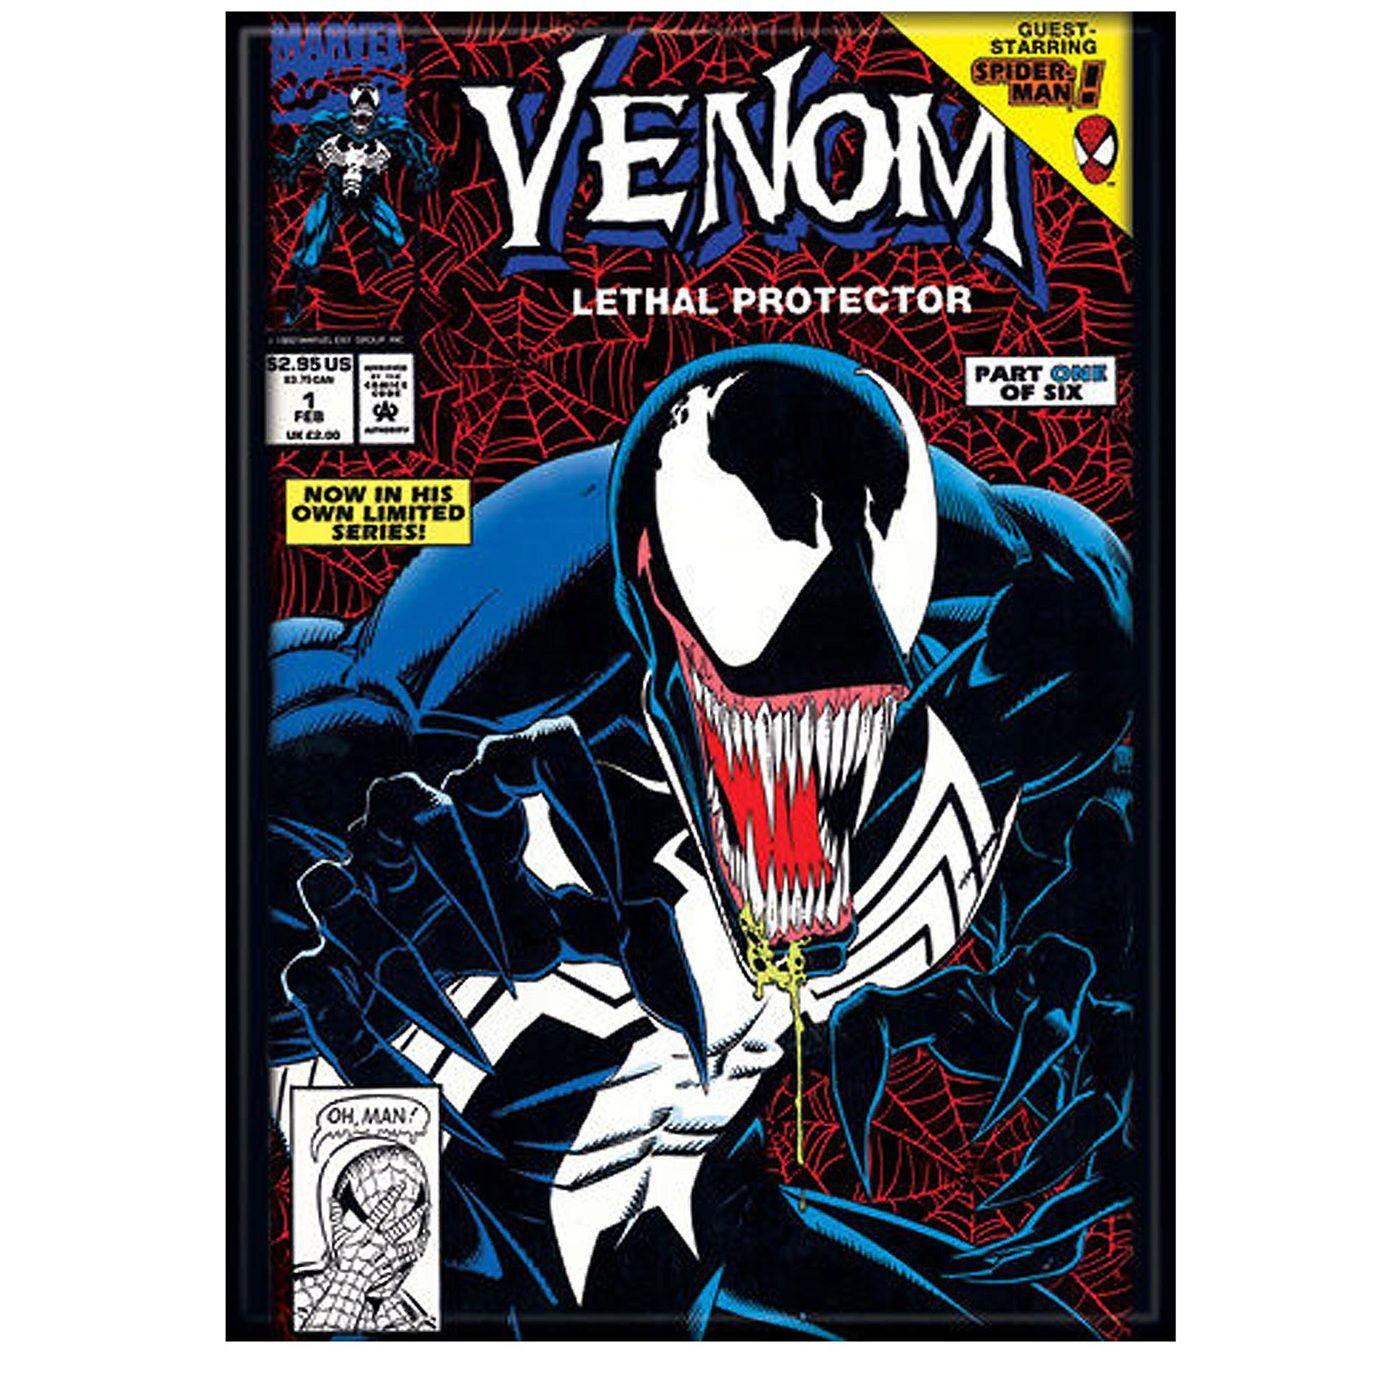 Venom Limited Series #1 Cover Magnet